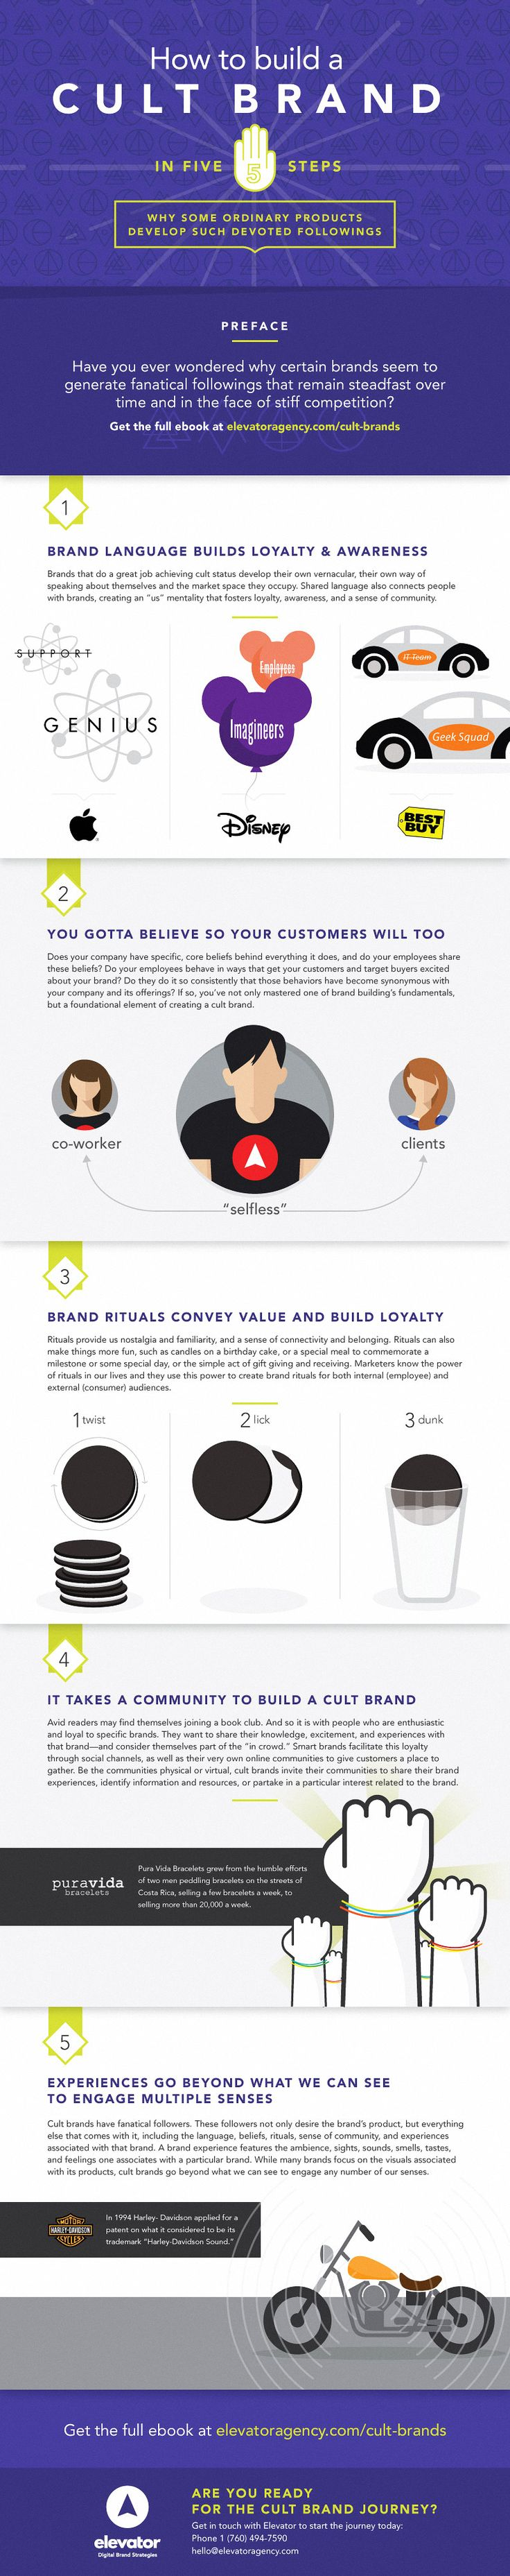 5 Keys to Building Brand Loyalty